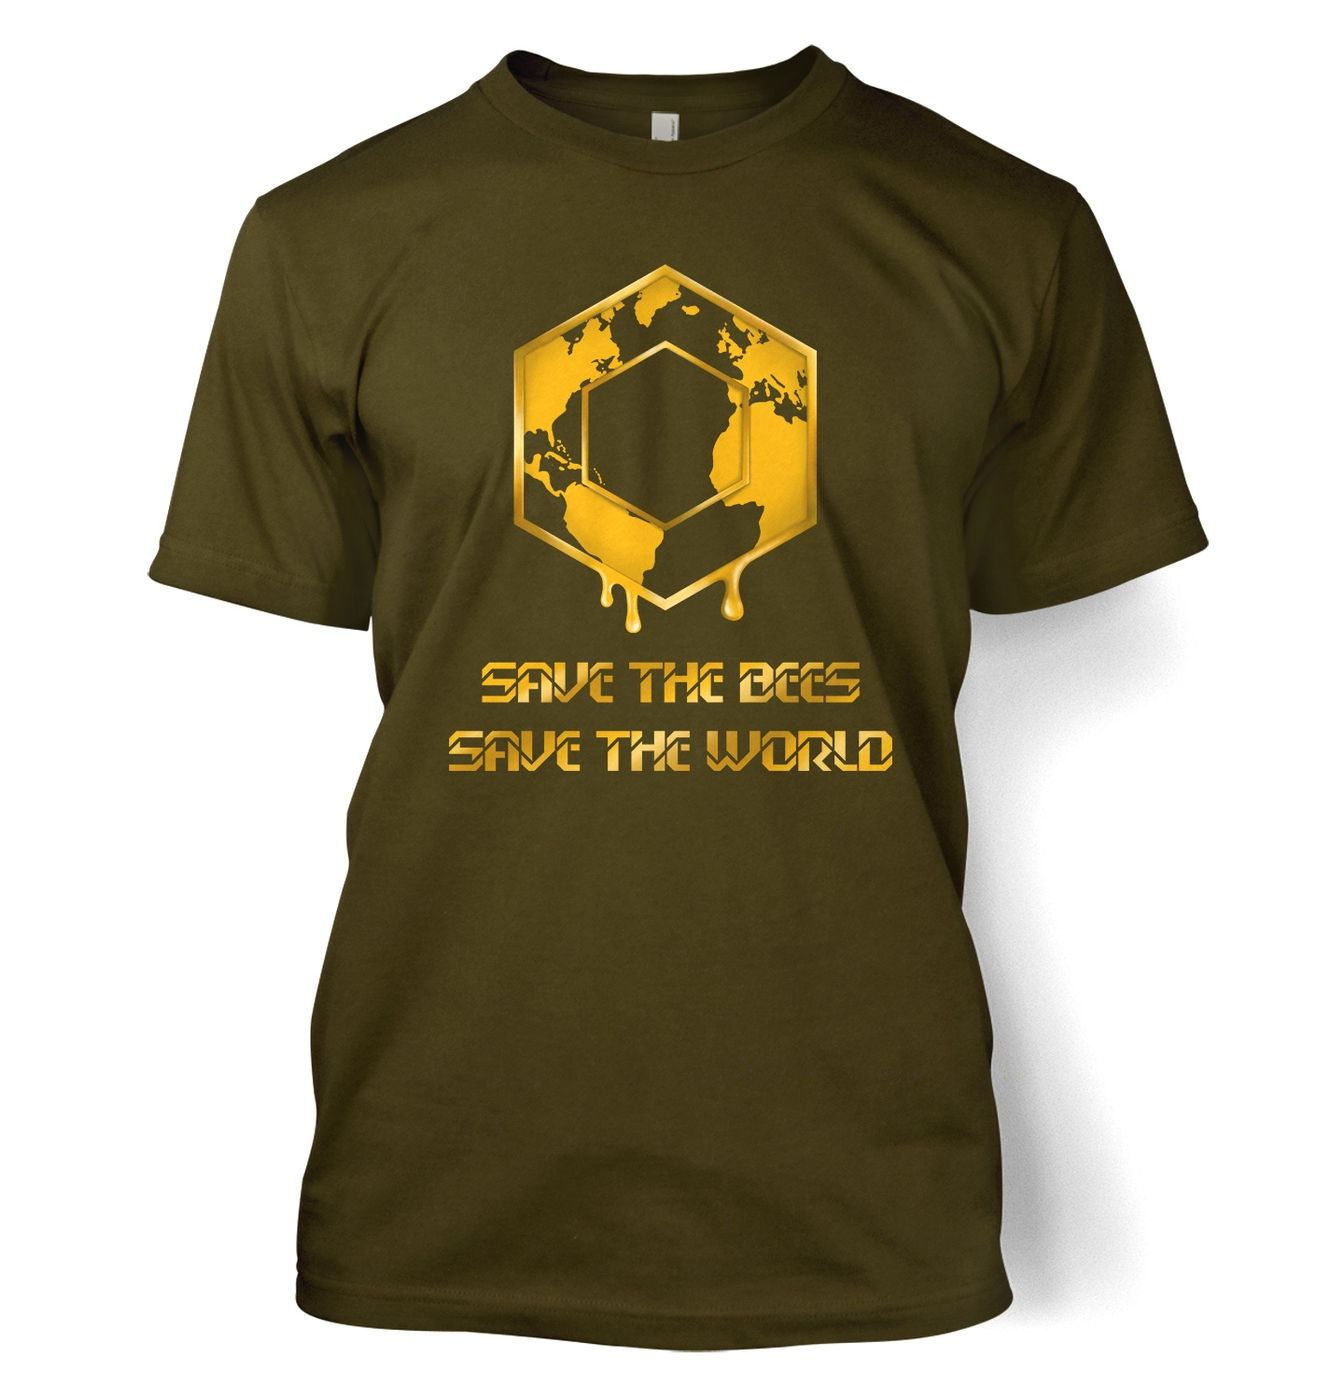 Save The Bees t-shirt by Something Geeky